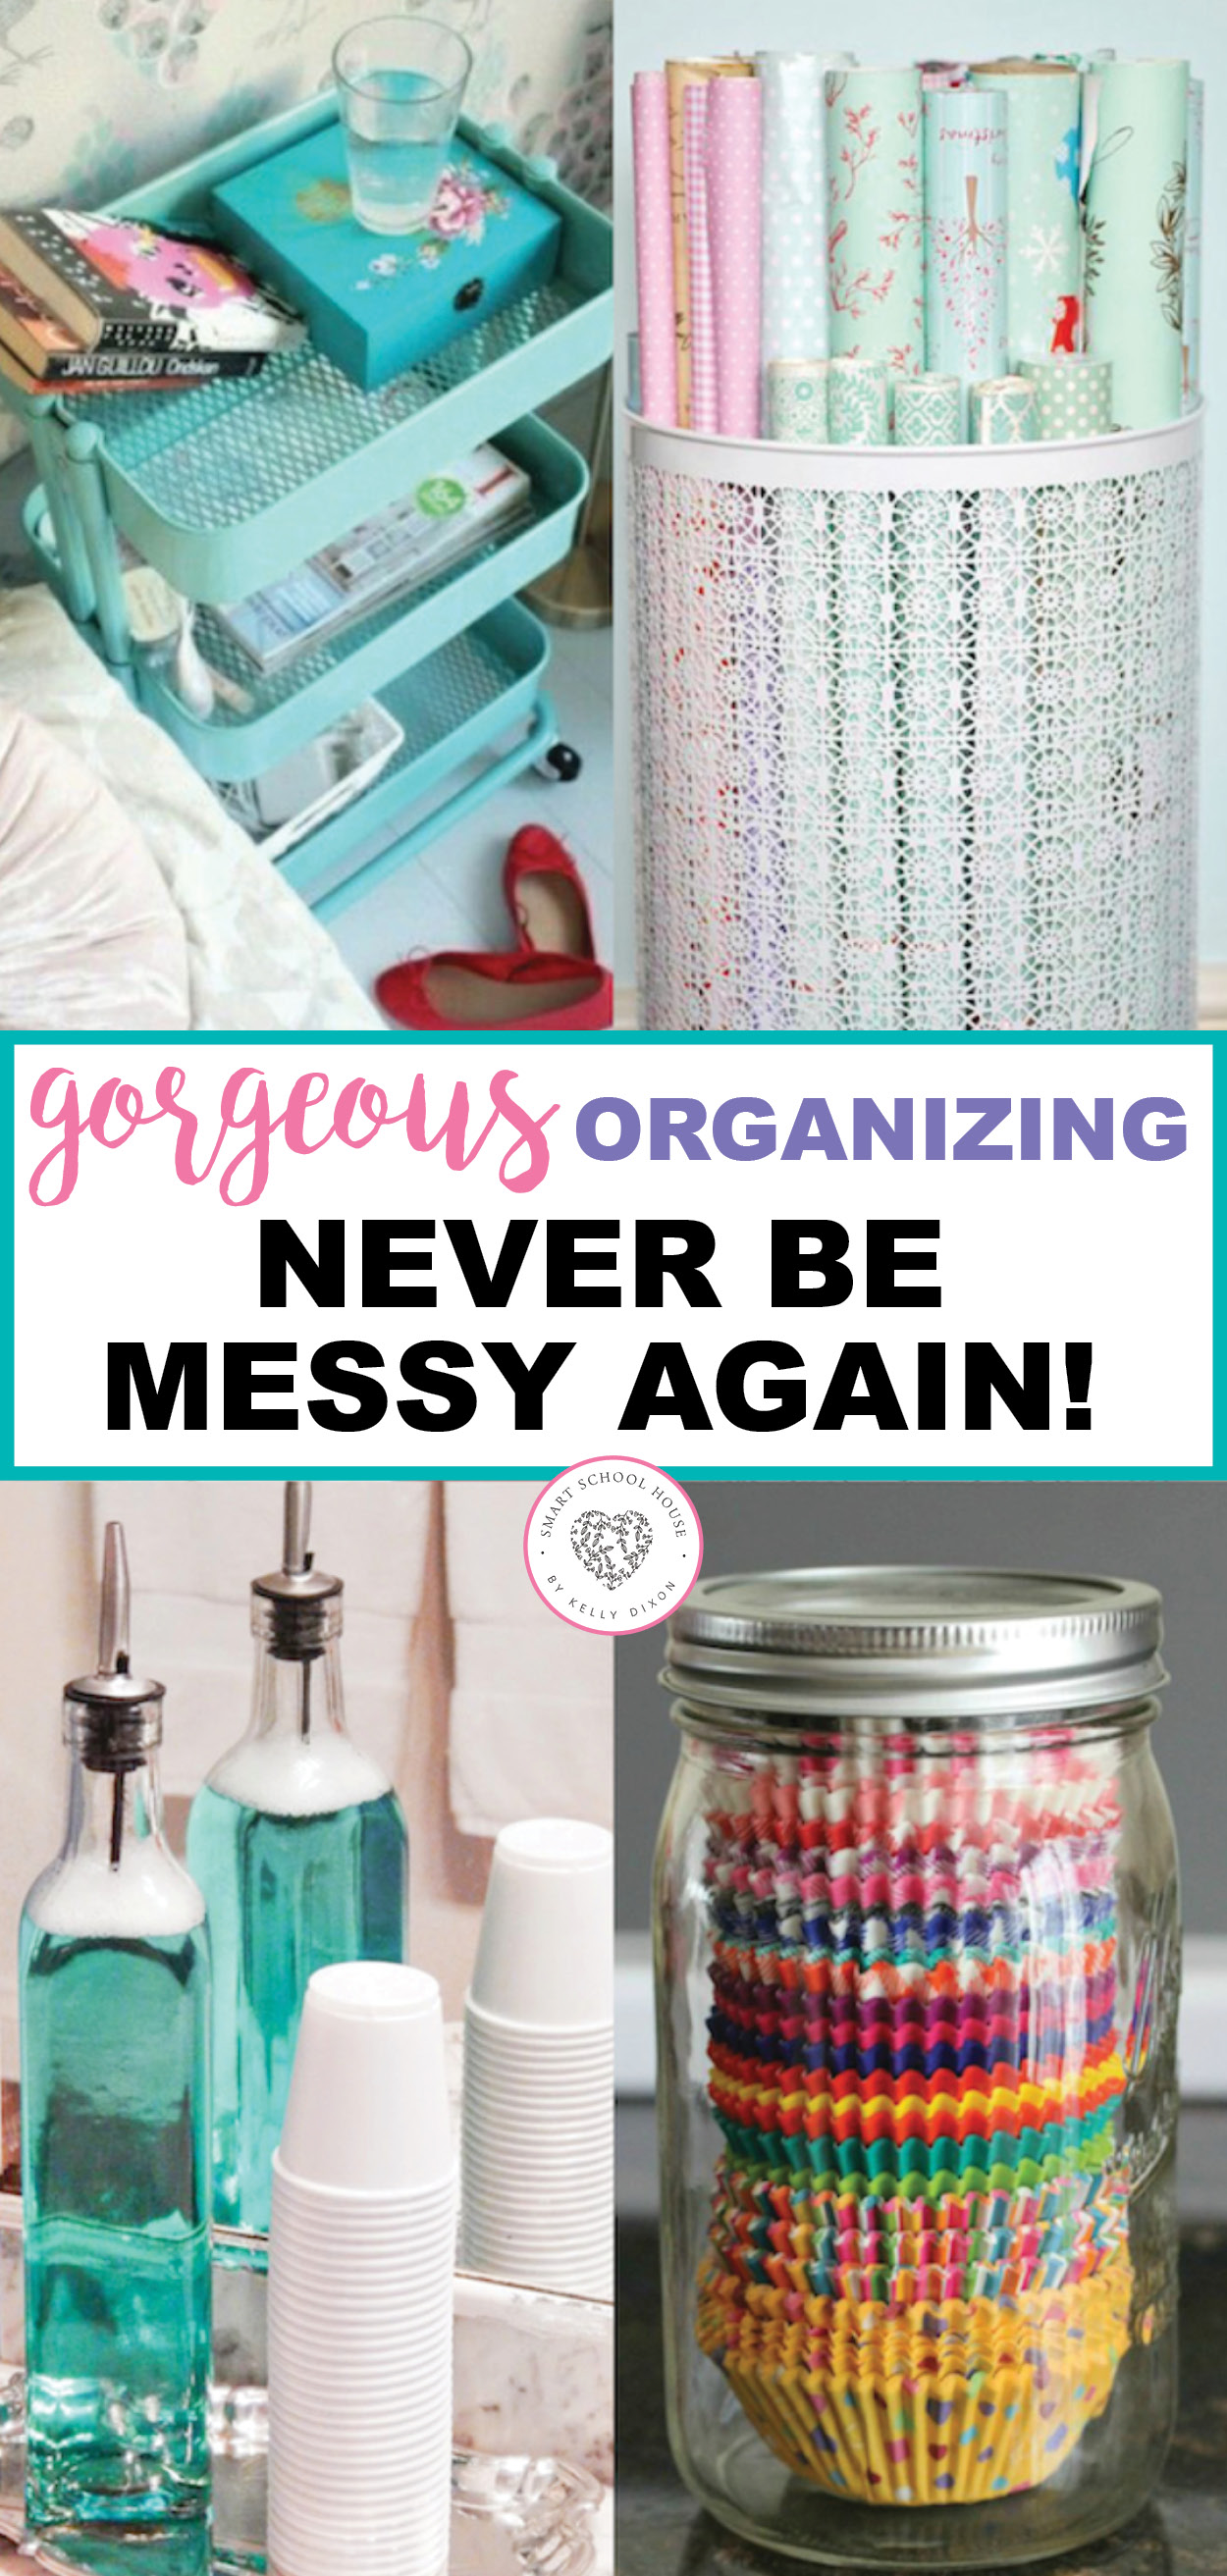 Organizing is essential in our homes, but it doesn't have to be ugly. You will never be messy again if you use these gorgeous organizing tips. Make organizing fun and beautiful with these tips. #organizing #prettyorganizing #bathroom #bedroom #kitchen #organizingtips #smartschoolhouse